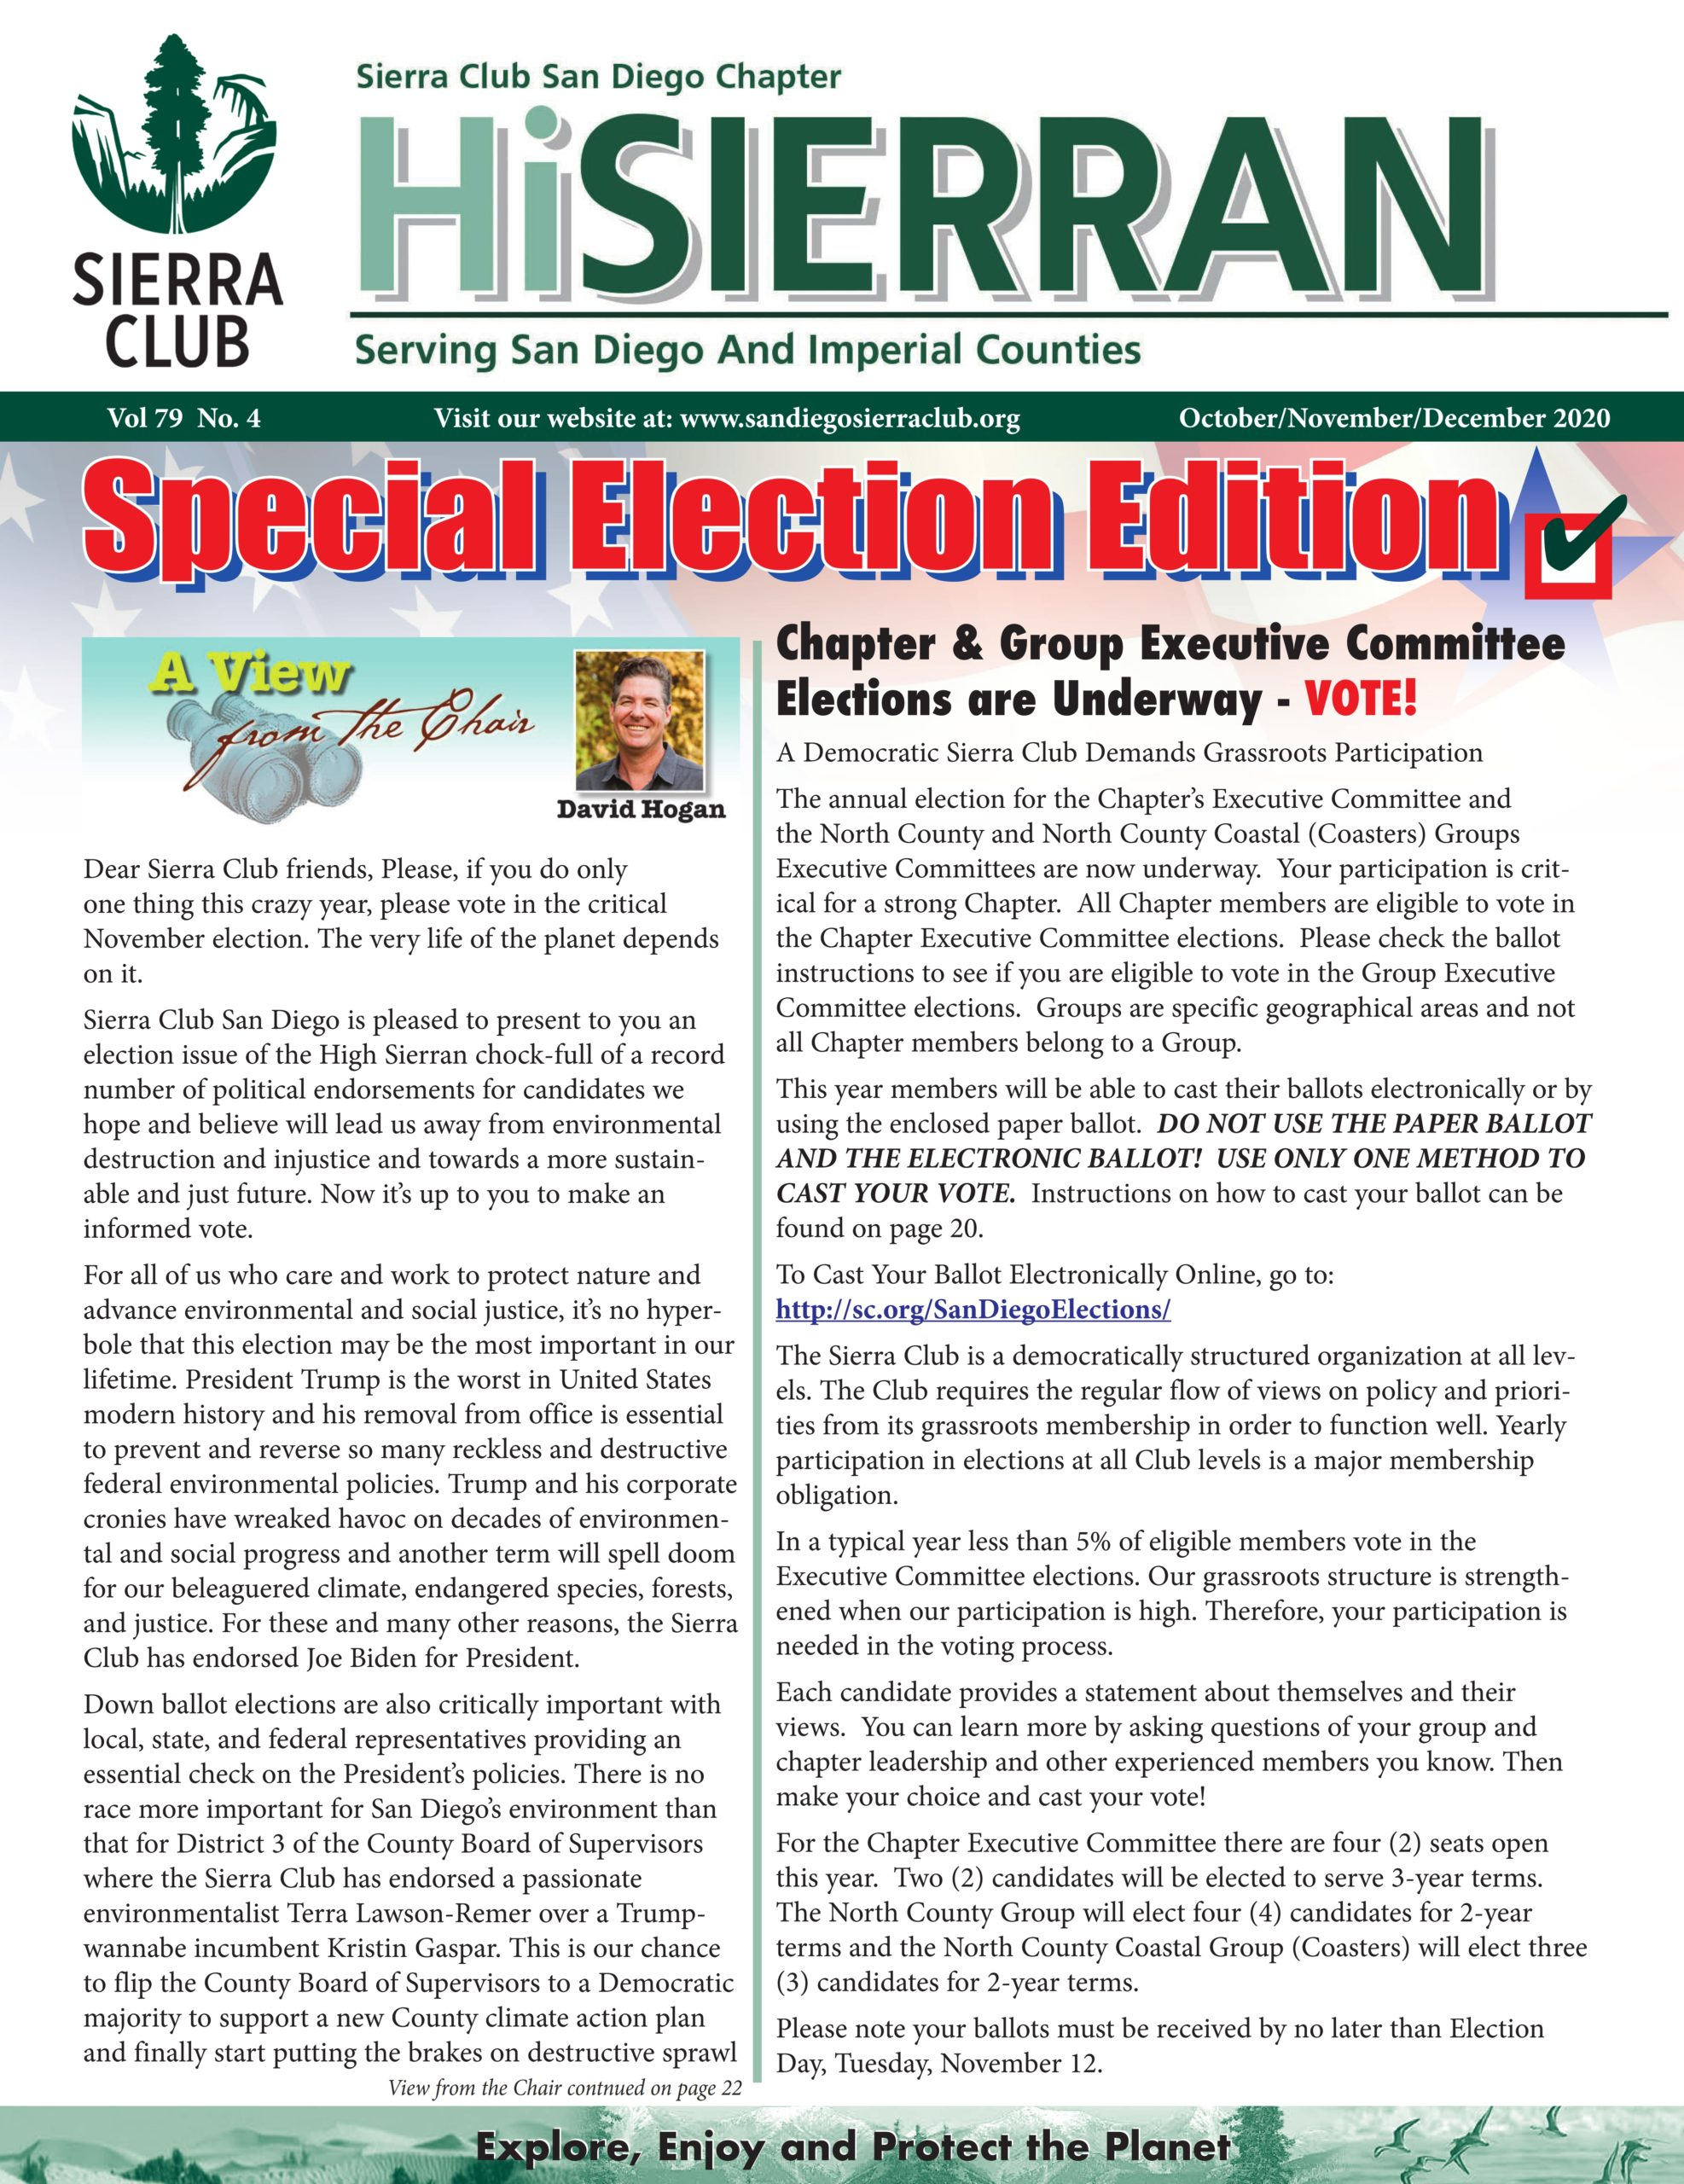 October-December 2020 Hi Sierran newsletter